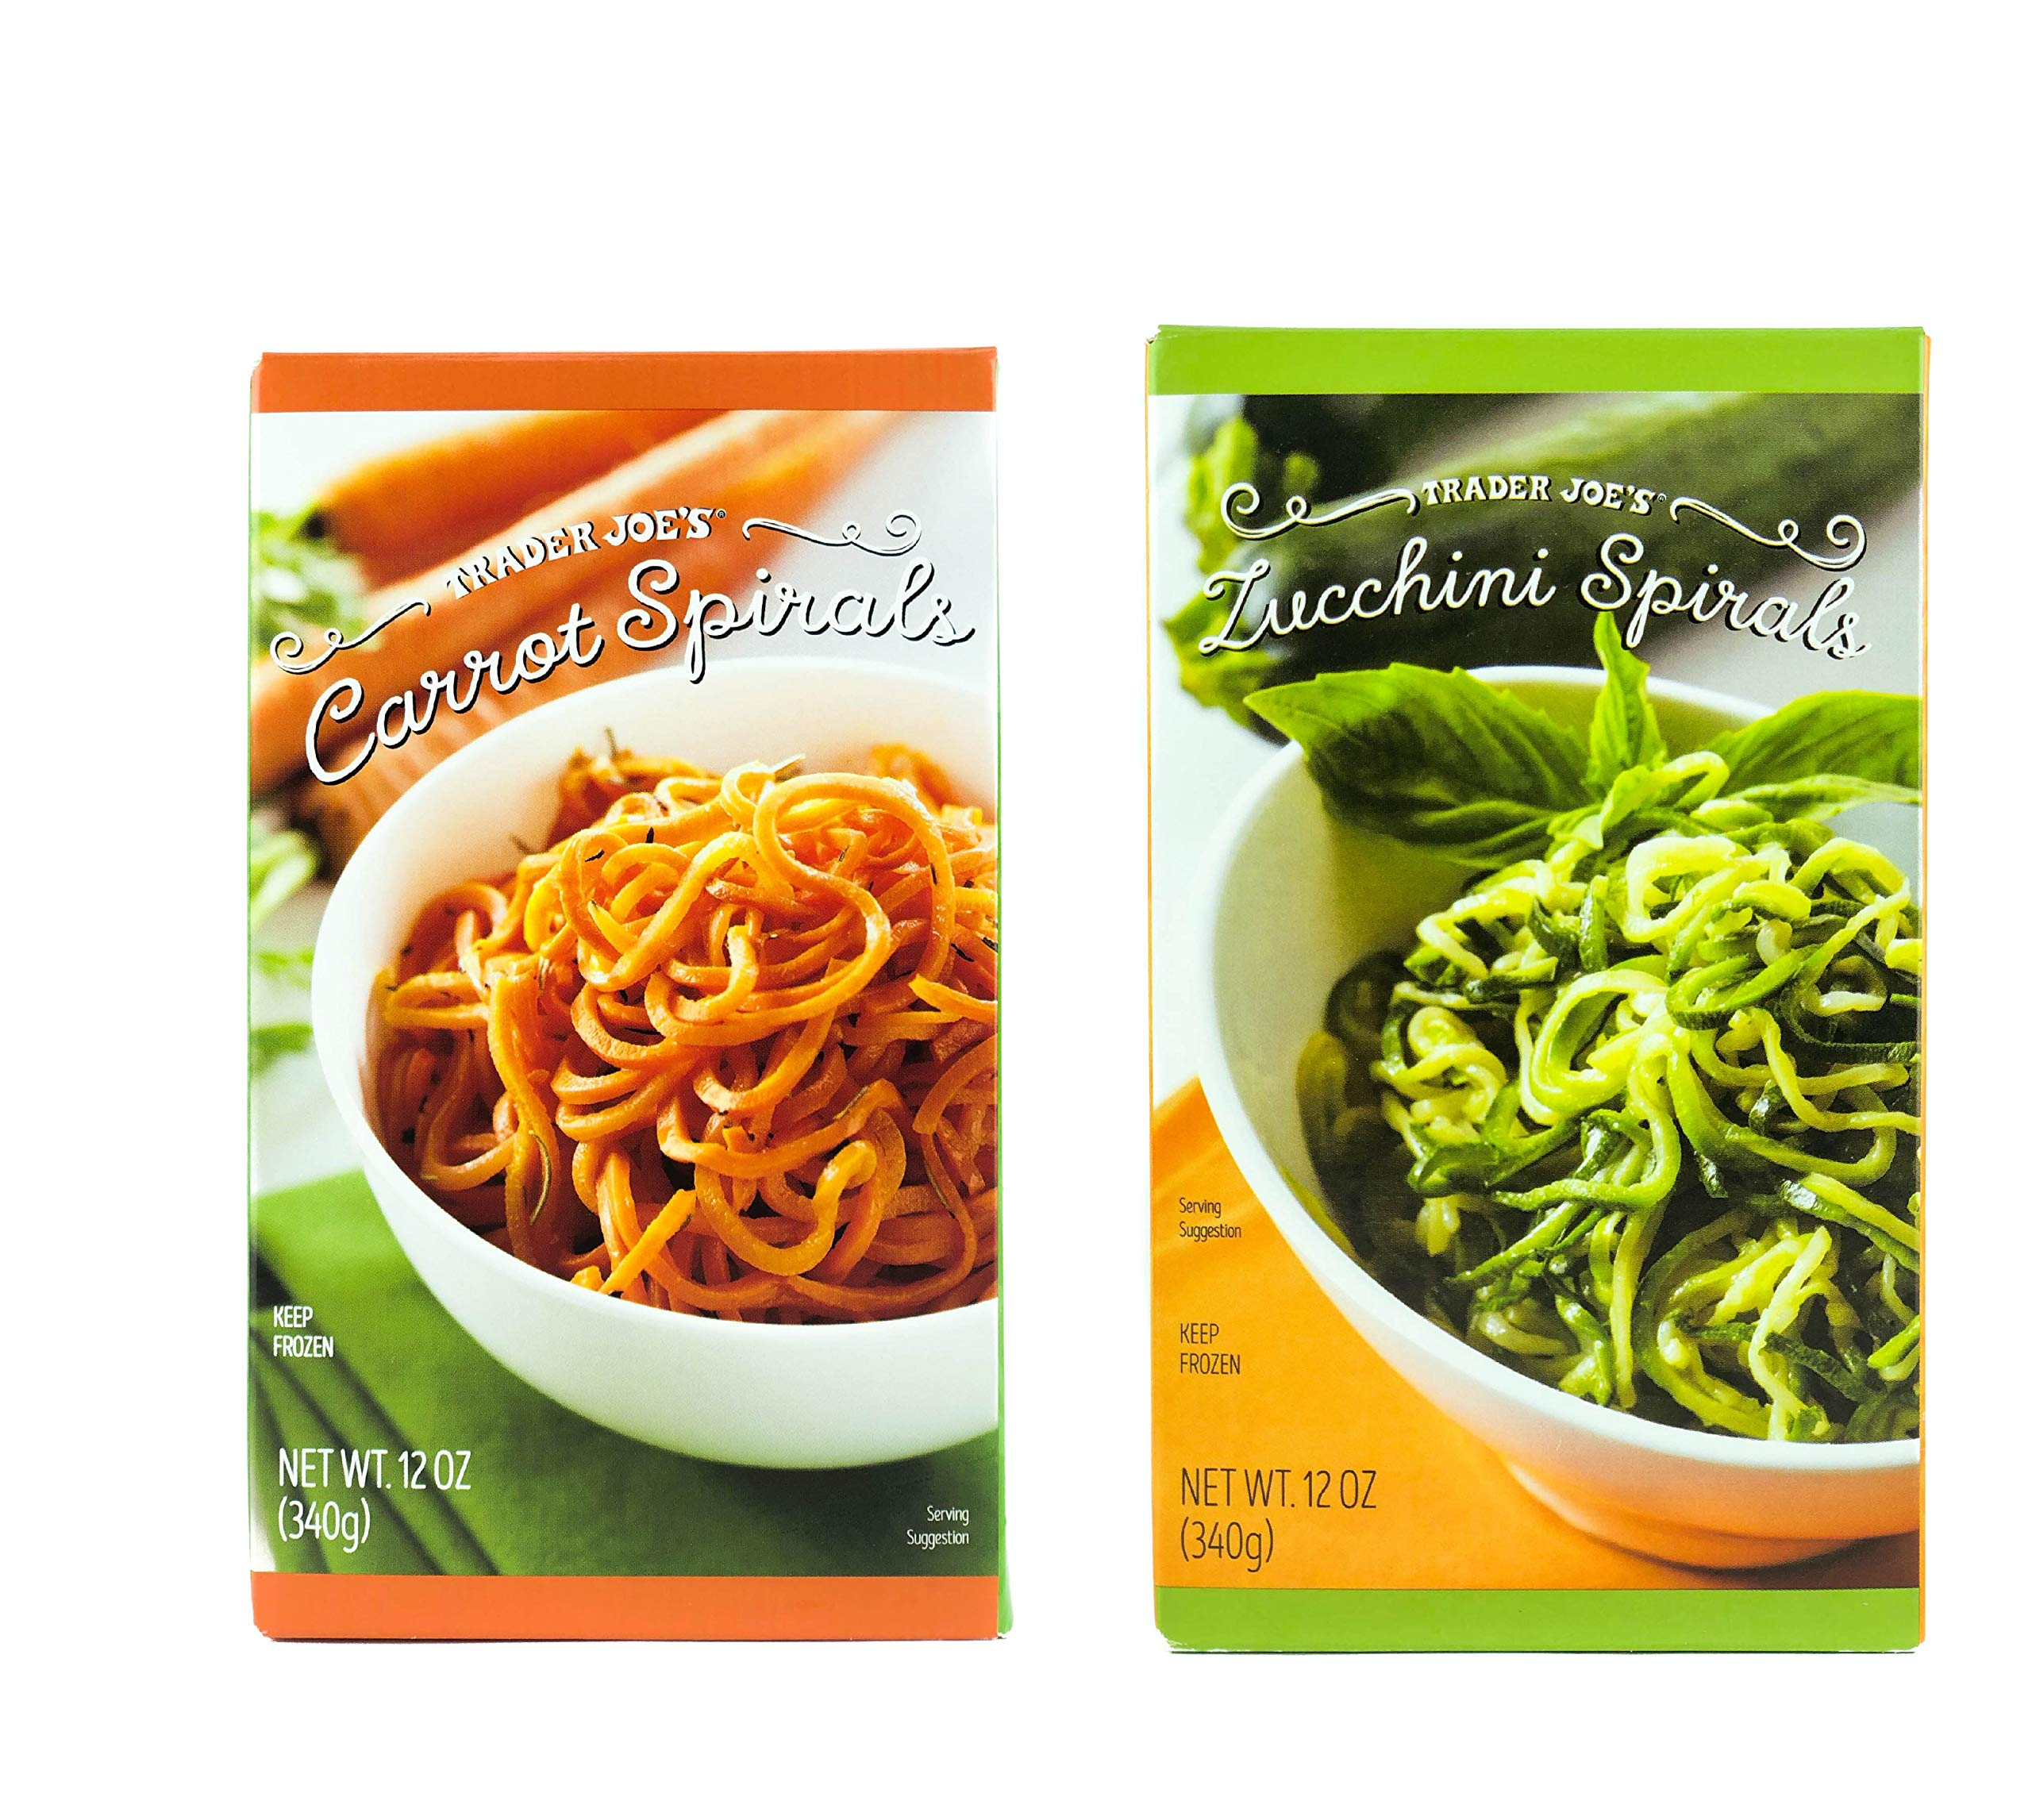 Trader Joe's Carrot and Zucchini Spirals Variety Pack, 4 of each (8 Pack)